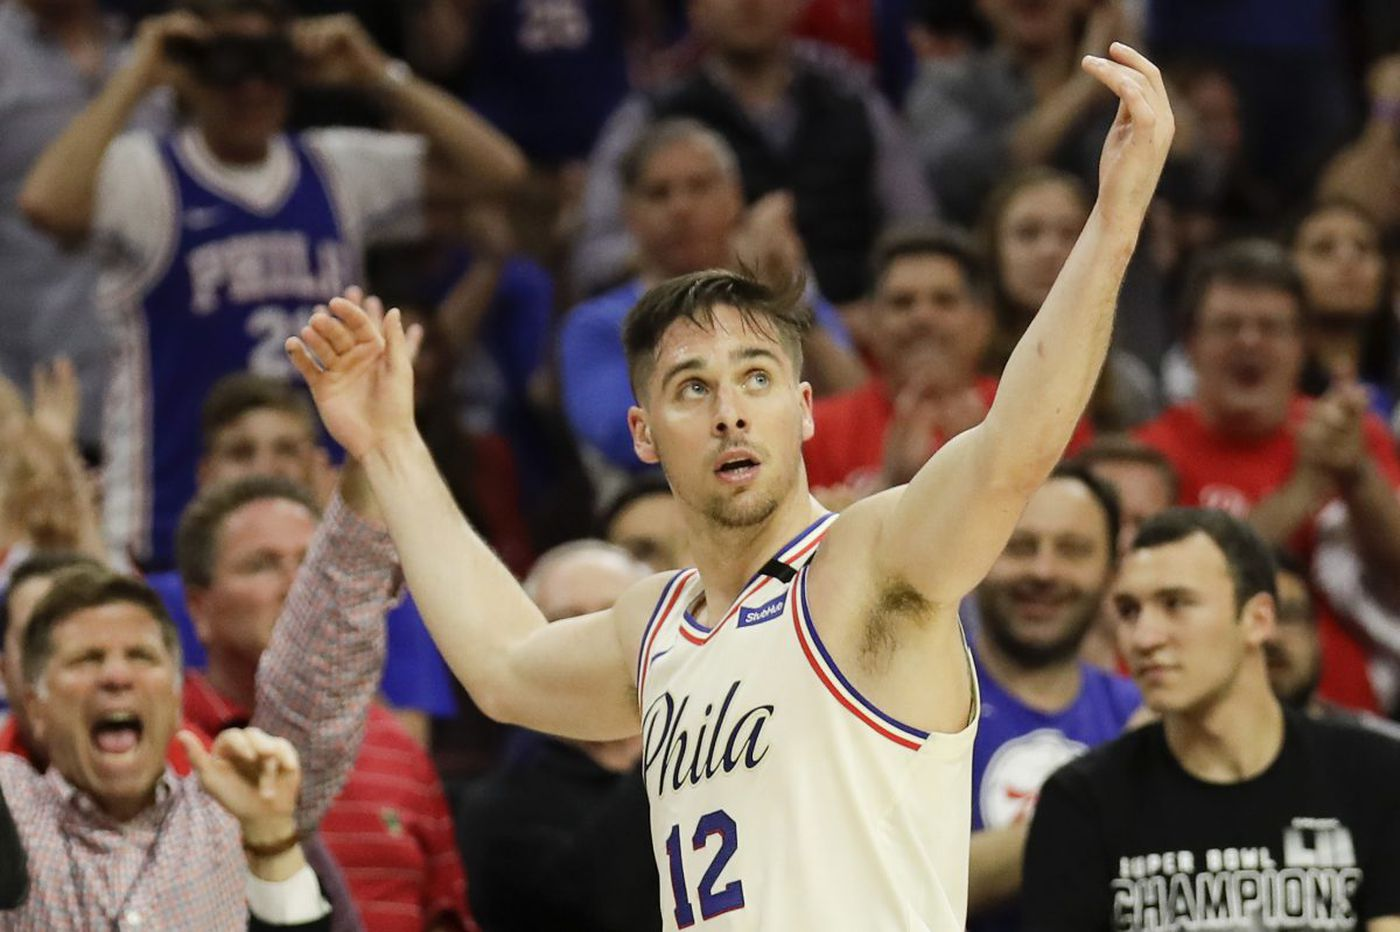 Does T.J. McConnell's playoff performance represent changing of the guards for Sixers? | Bob Ford